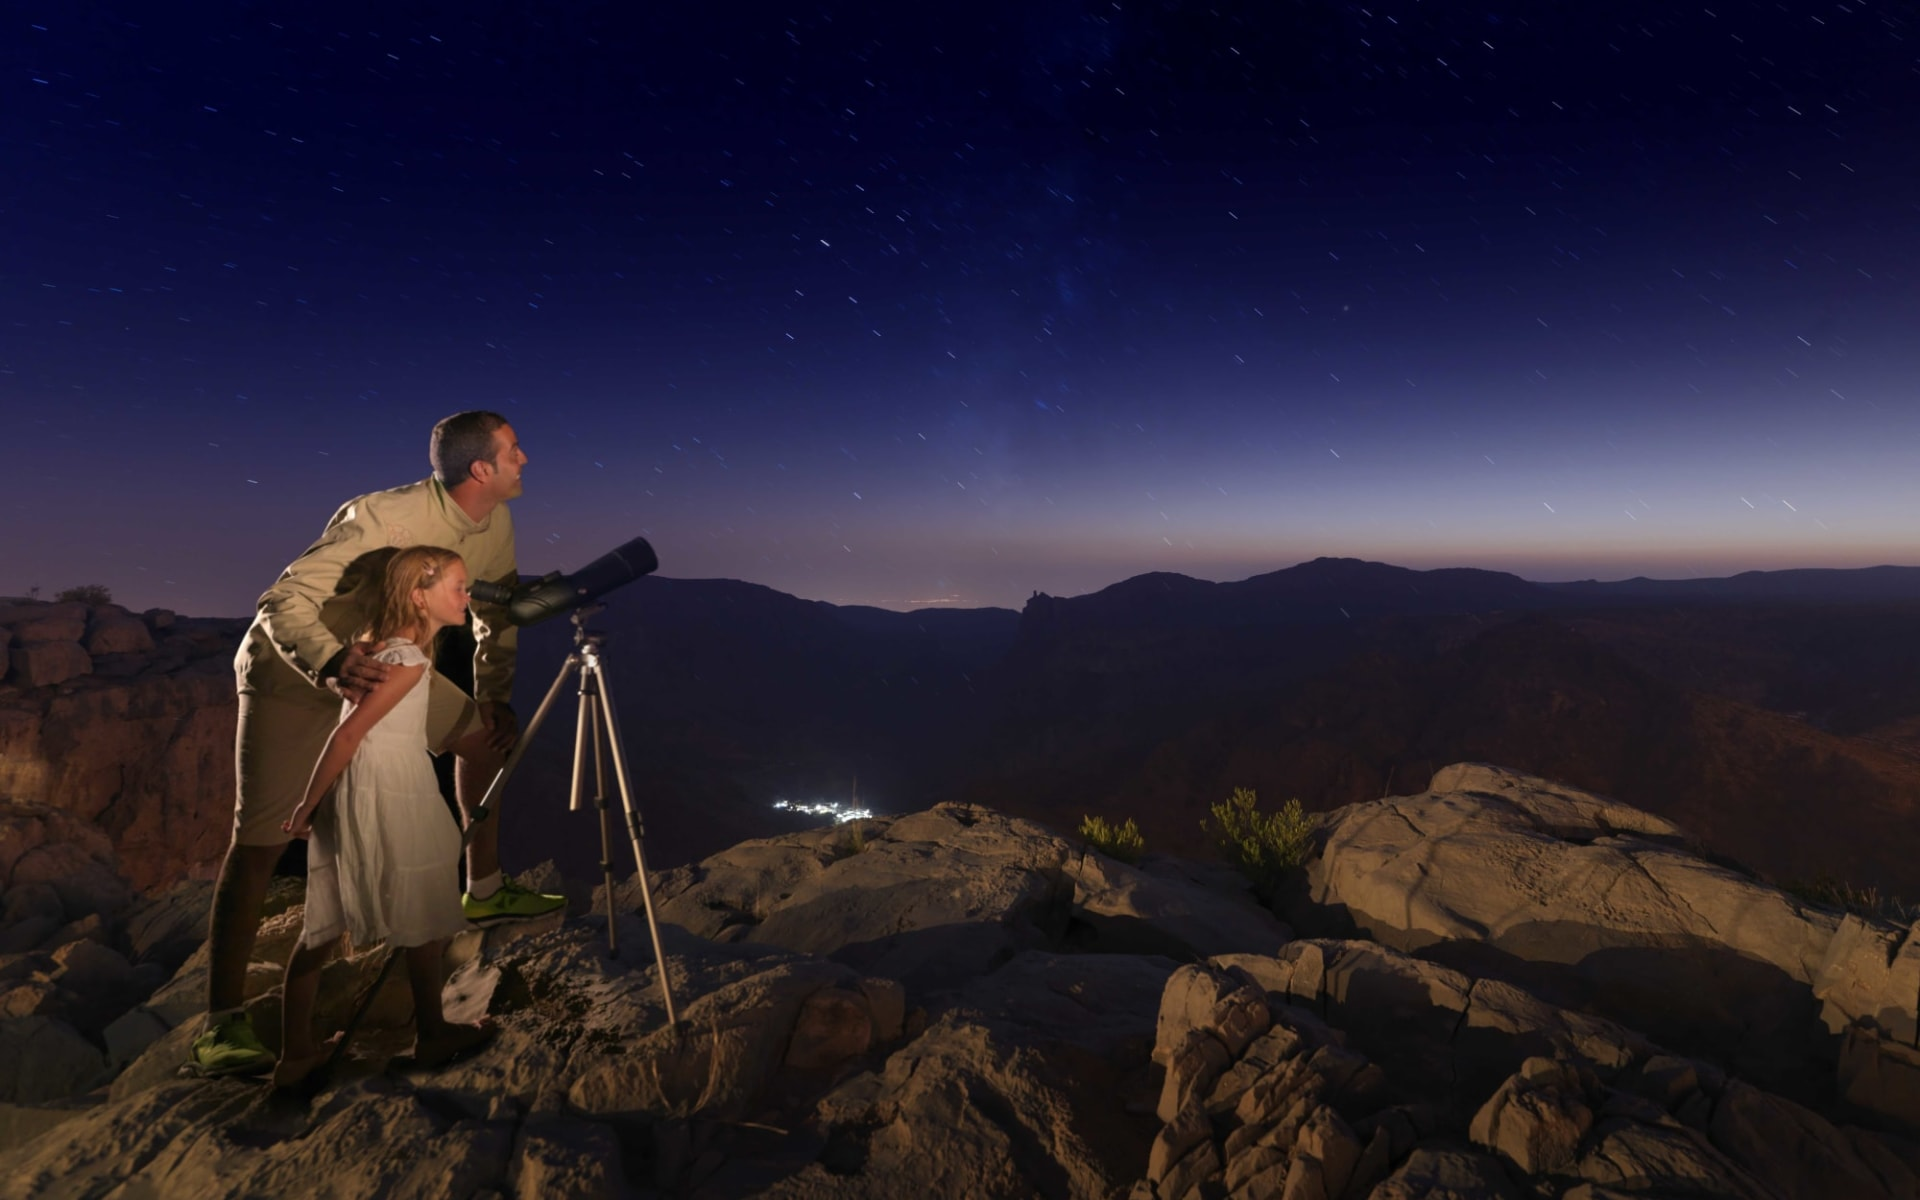 Anantara Al Jabal Al Akhdar in Jebel Akhdar:  Star Gazing